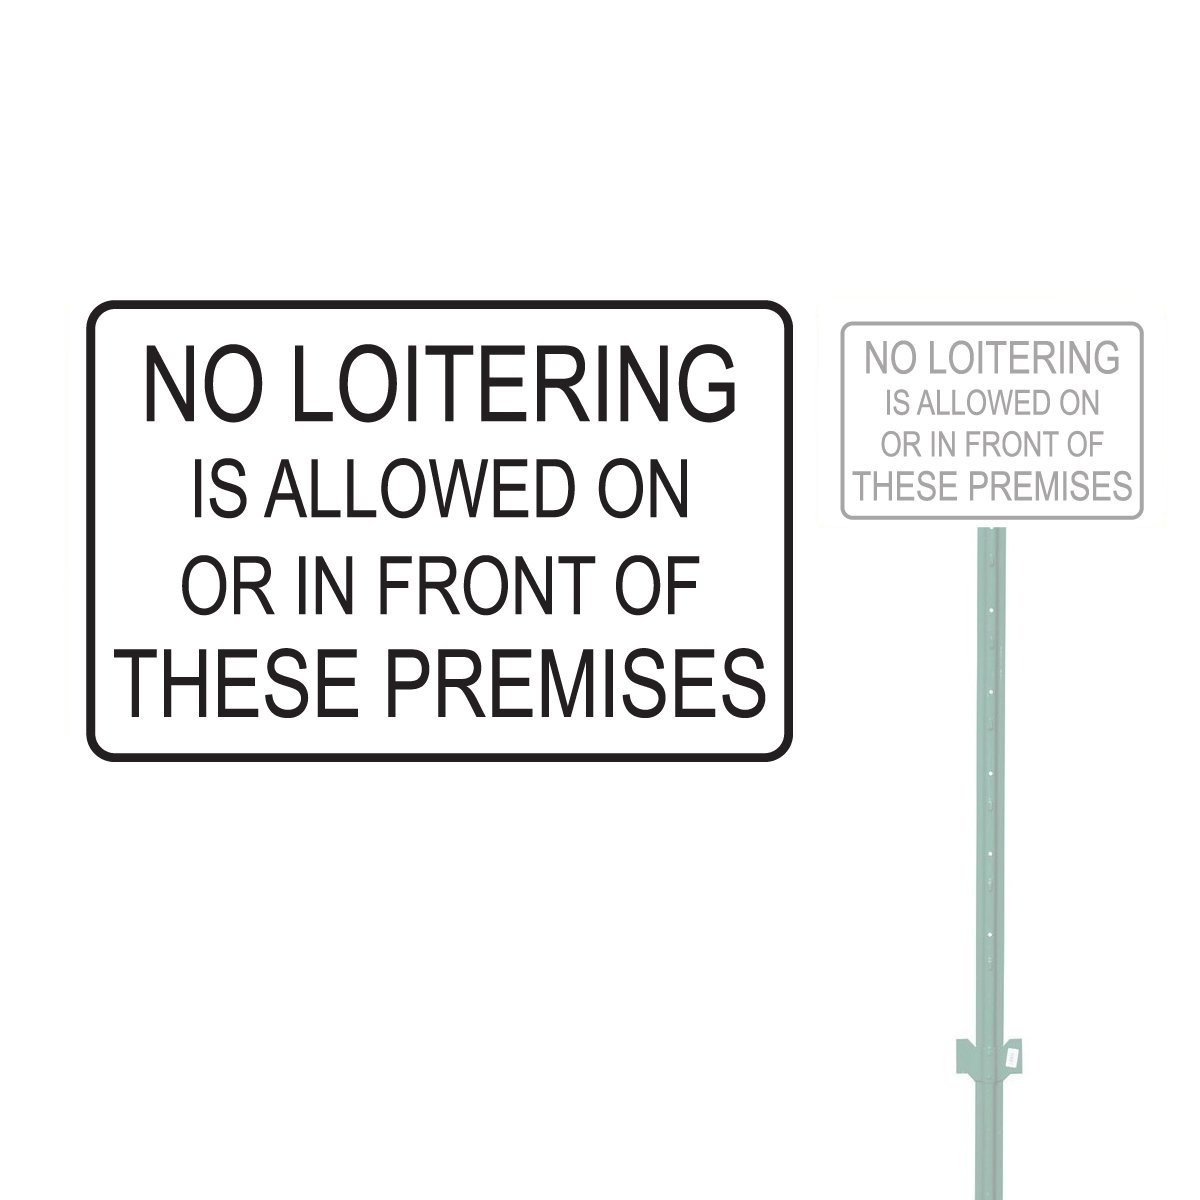 NO LOITERING IS ALLOWED ON OR IN FRONT OF THESE PREMISES HEAVY DUTY ALUMINUM SIGN 10'' x 15''